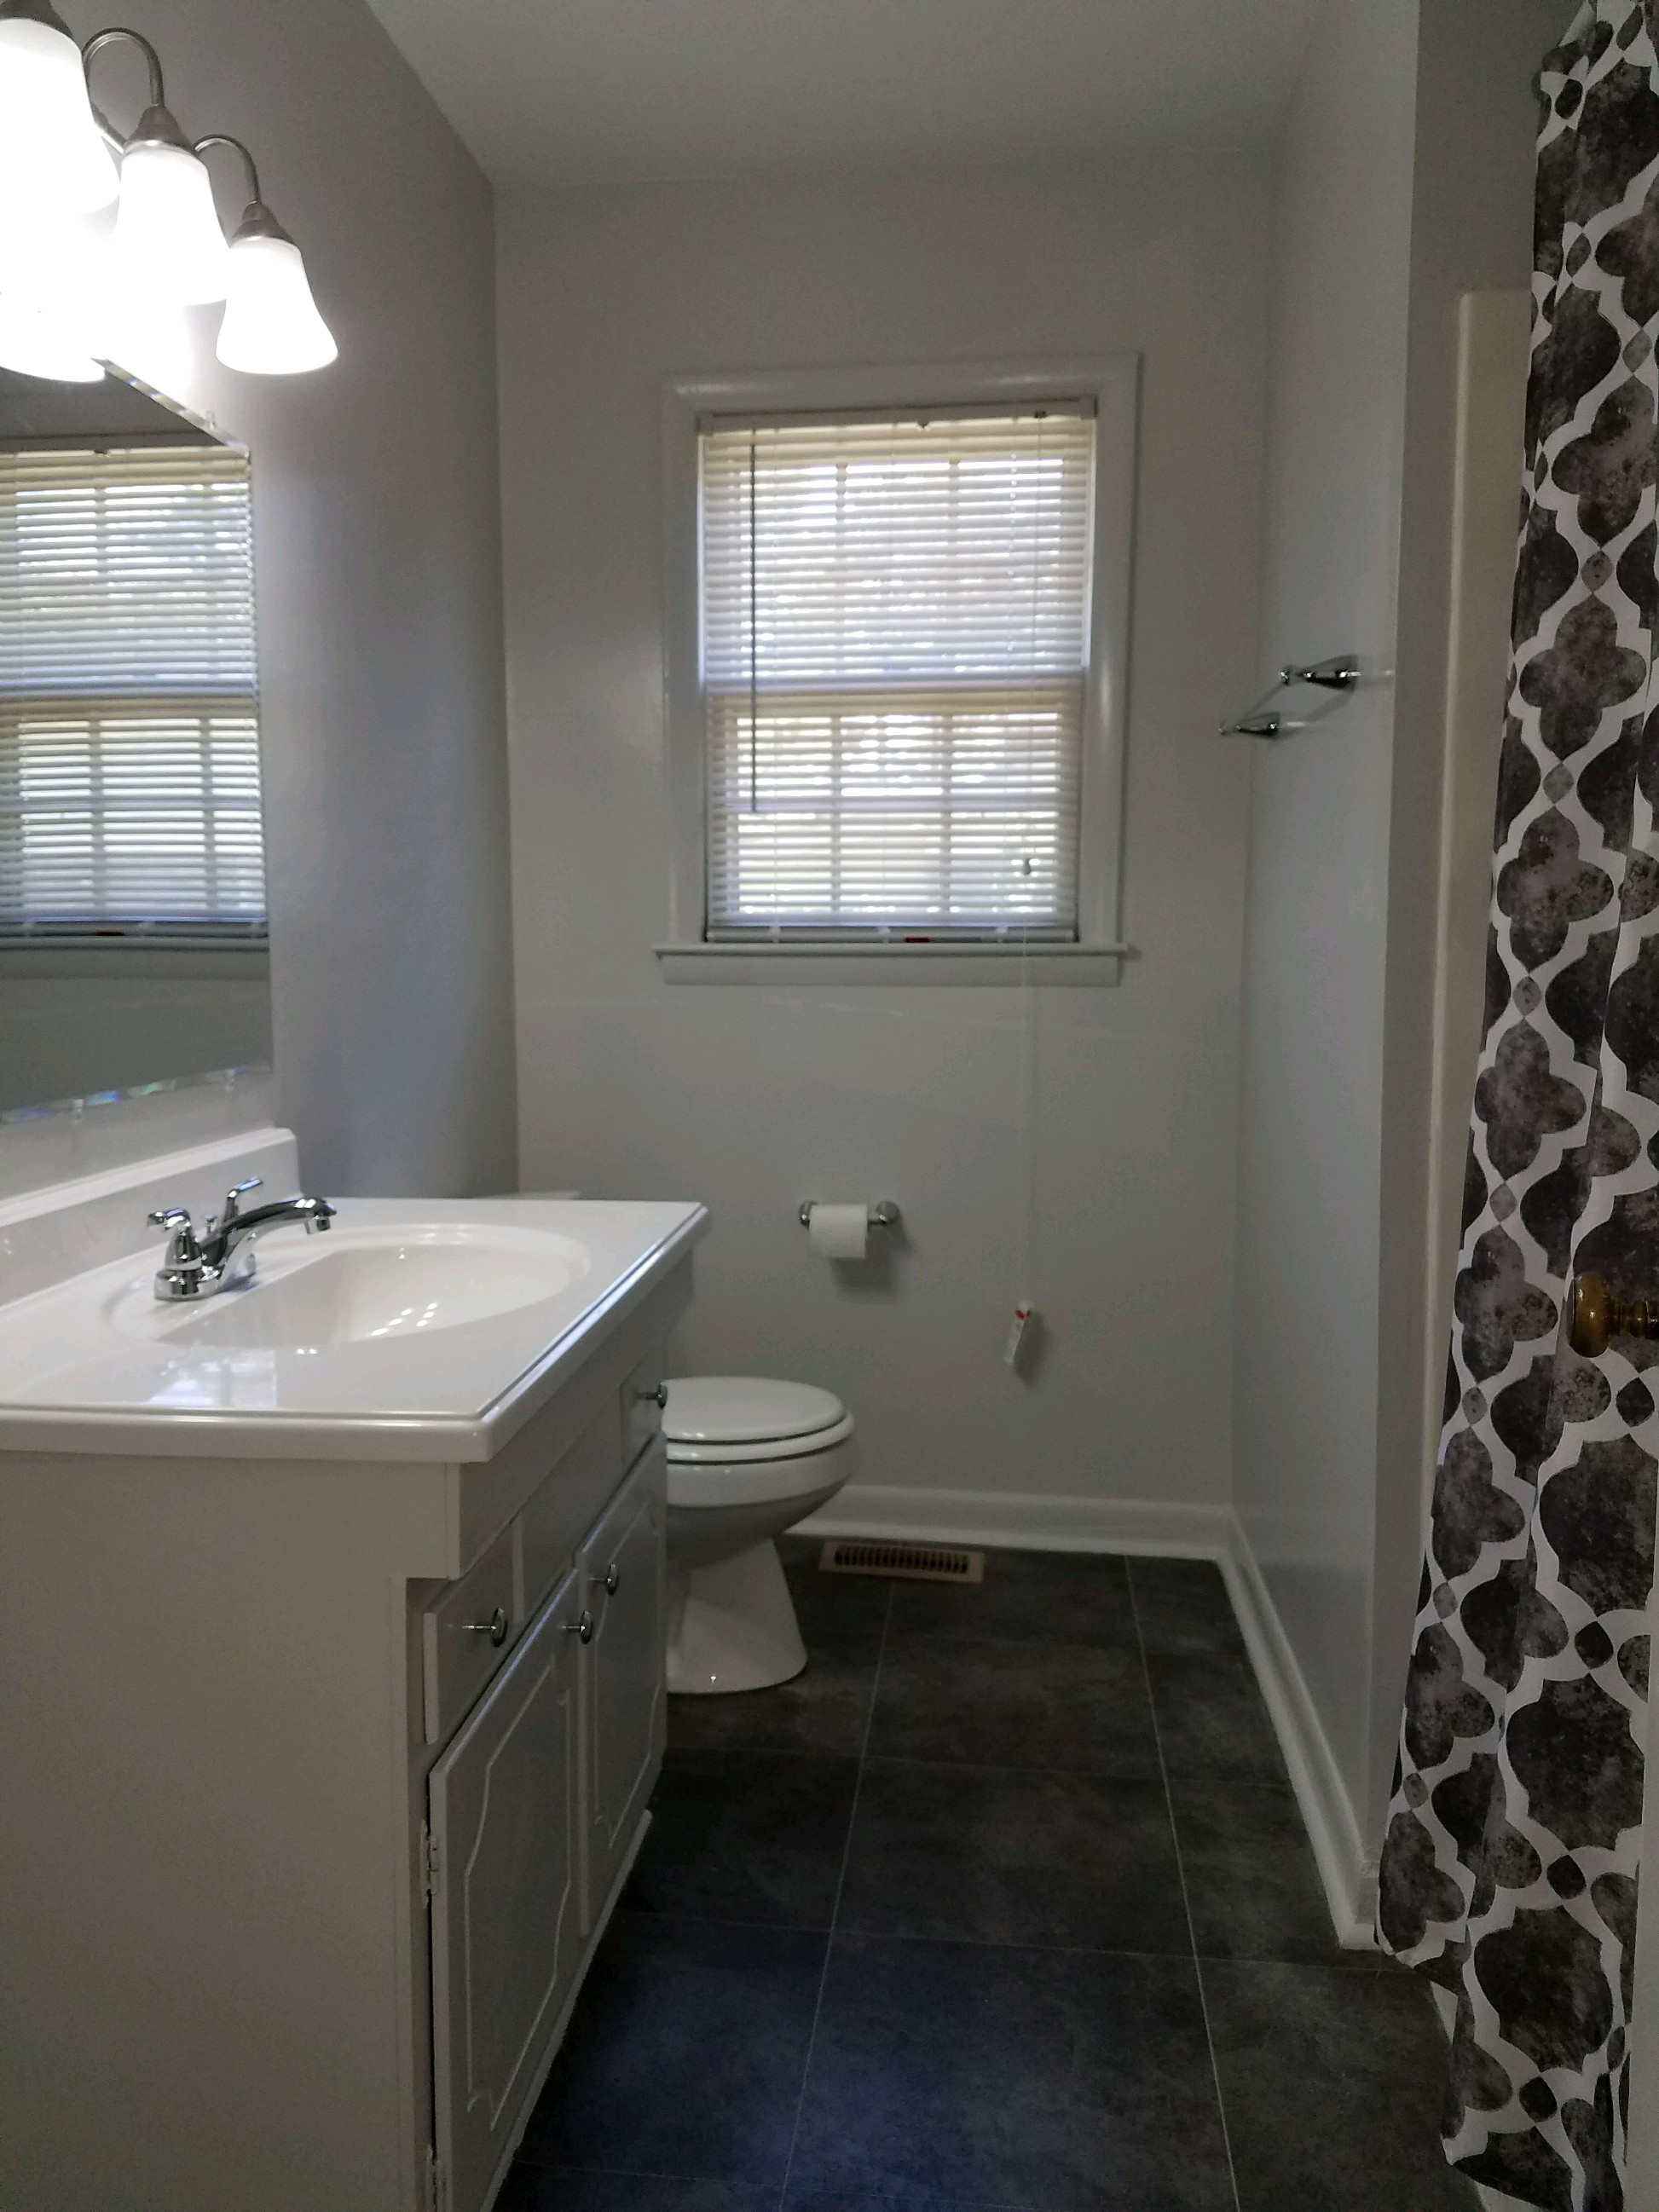 HOUSE for RENT at 1610 Diplomat - Guest Bath - DanielsRents.com